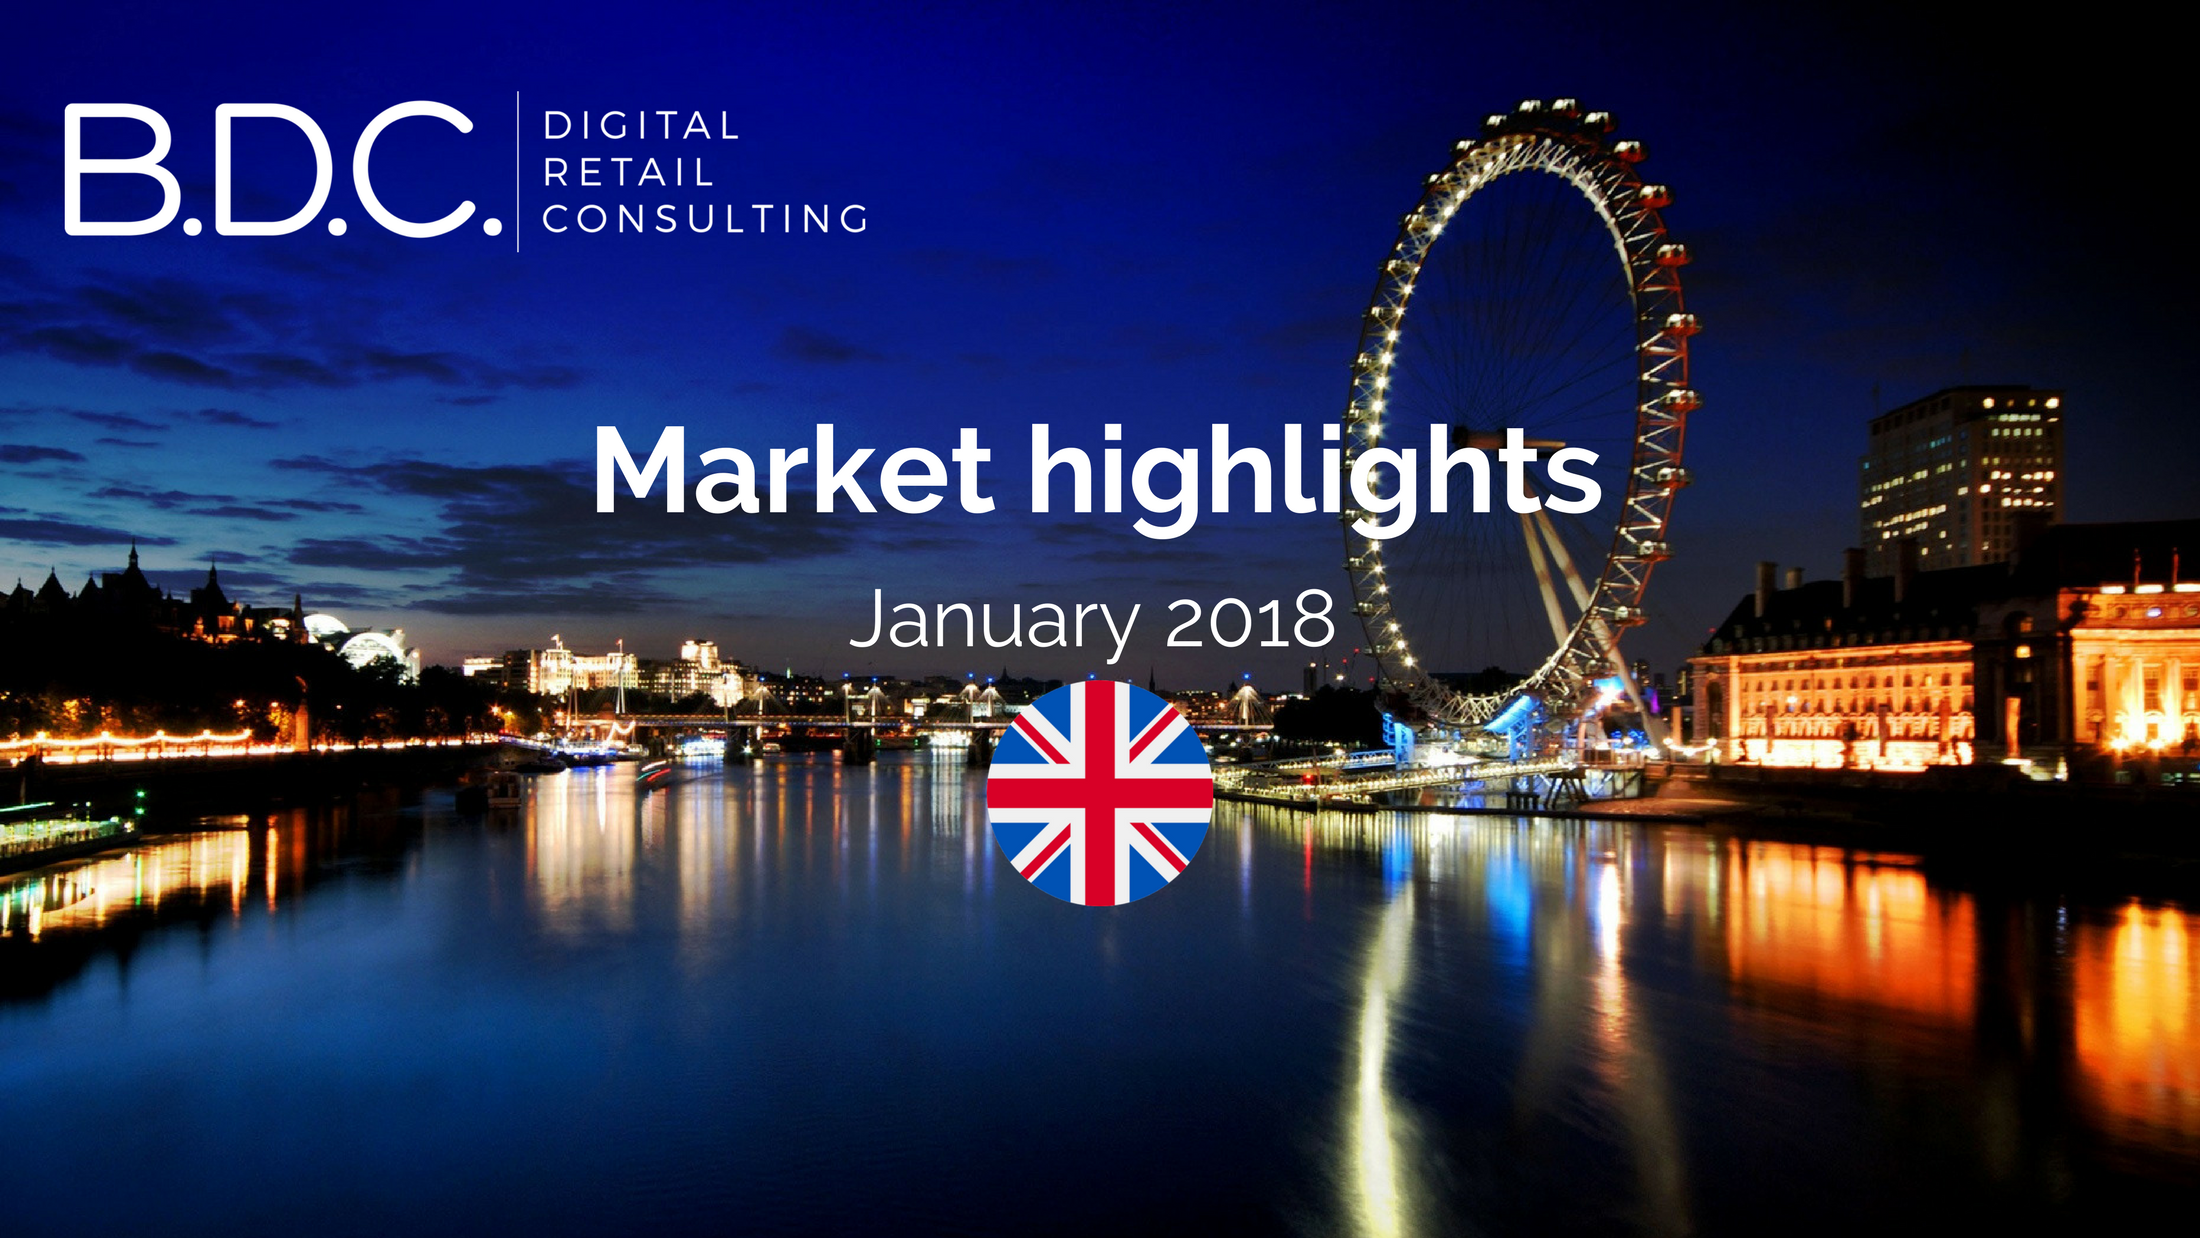 Trends News 18 - UK Market highlights - January 2018